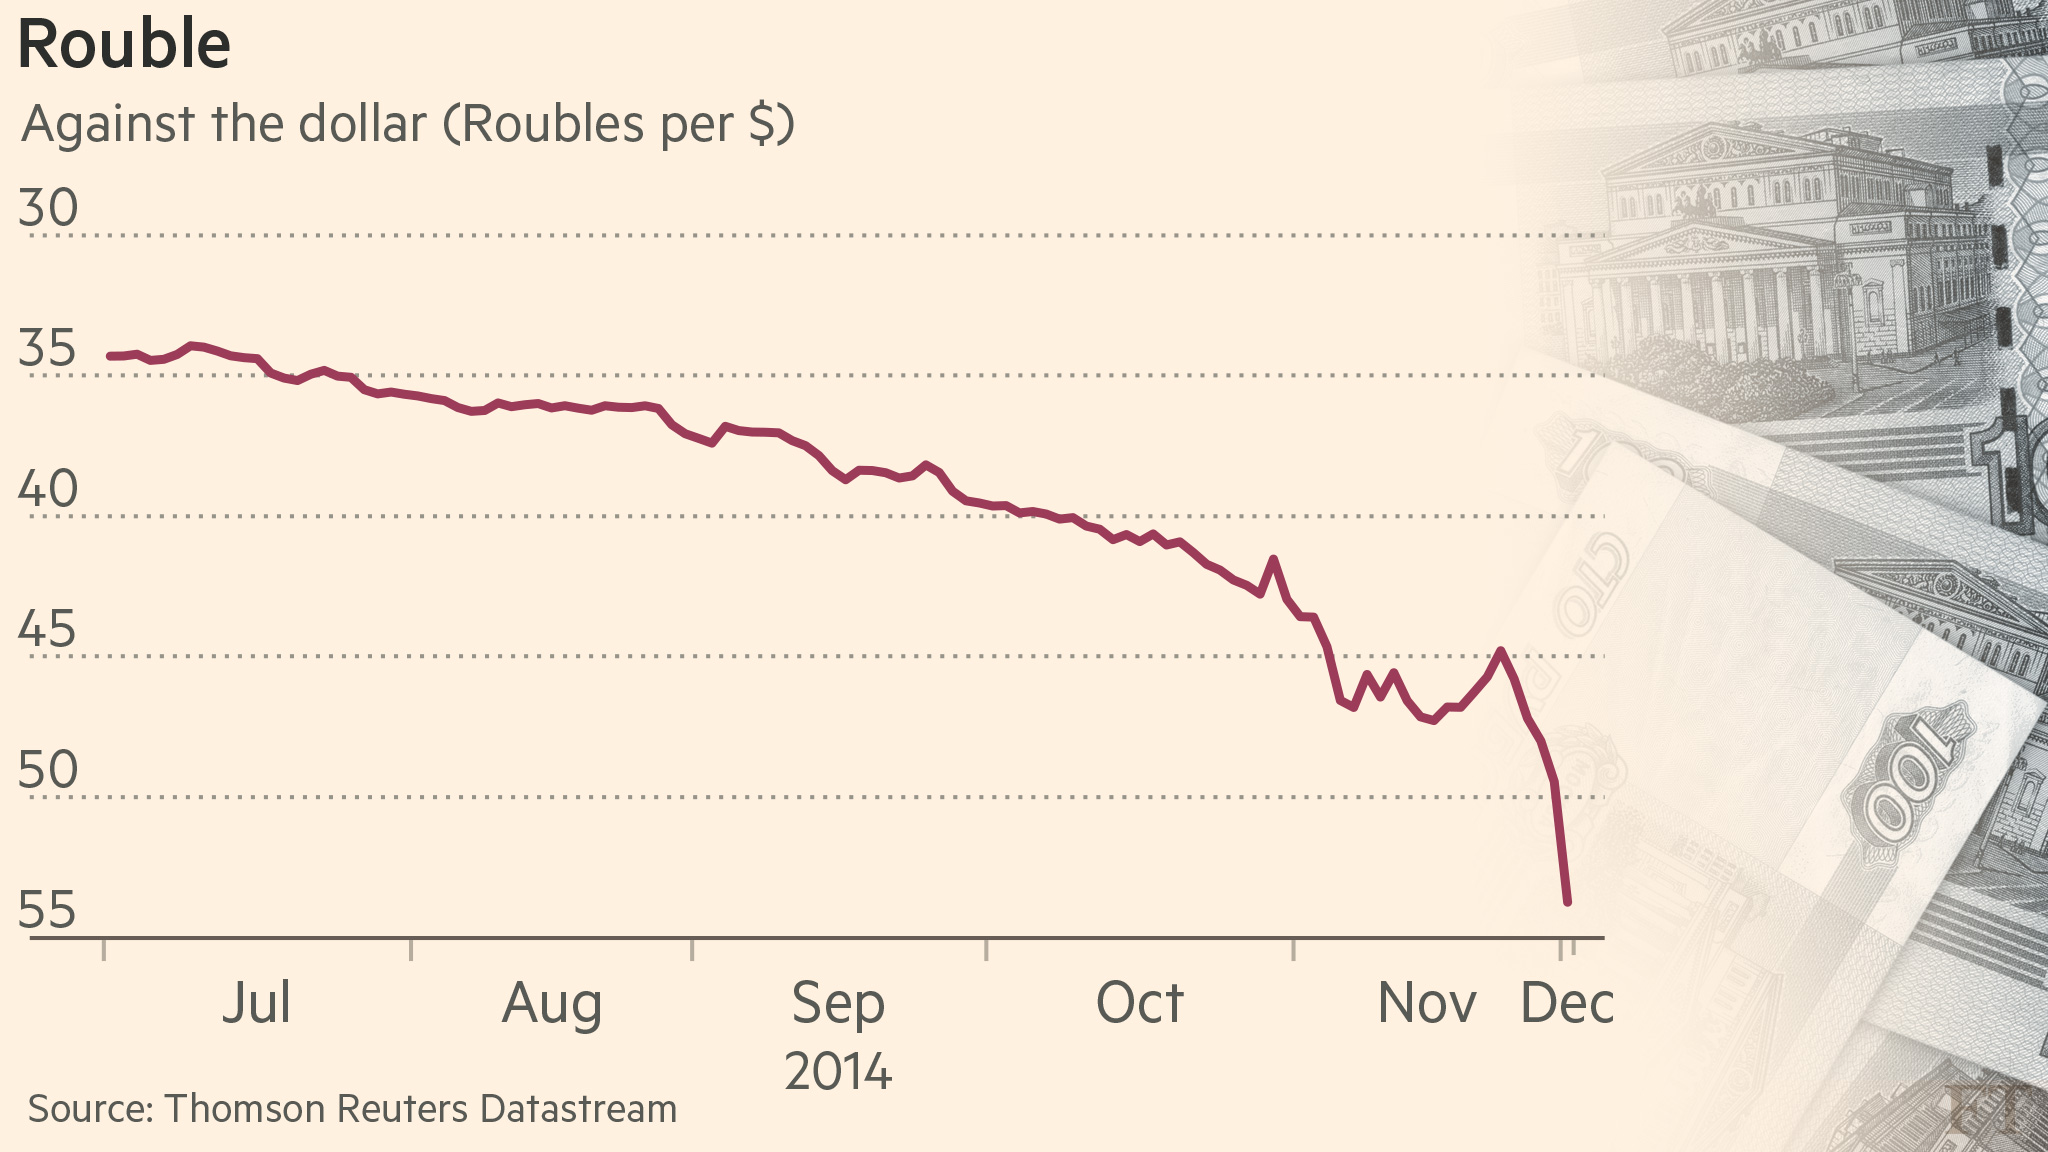 Why is the ruble falling and will there be a default